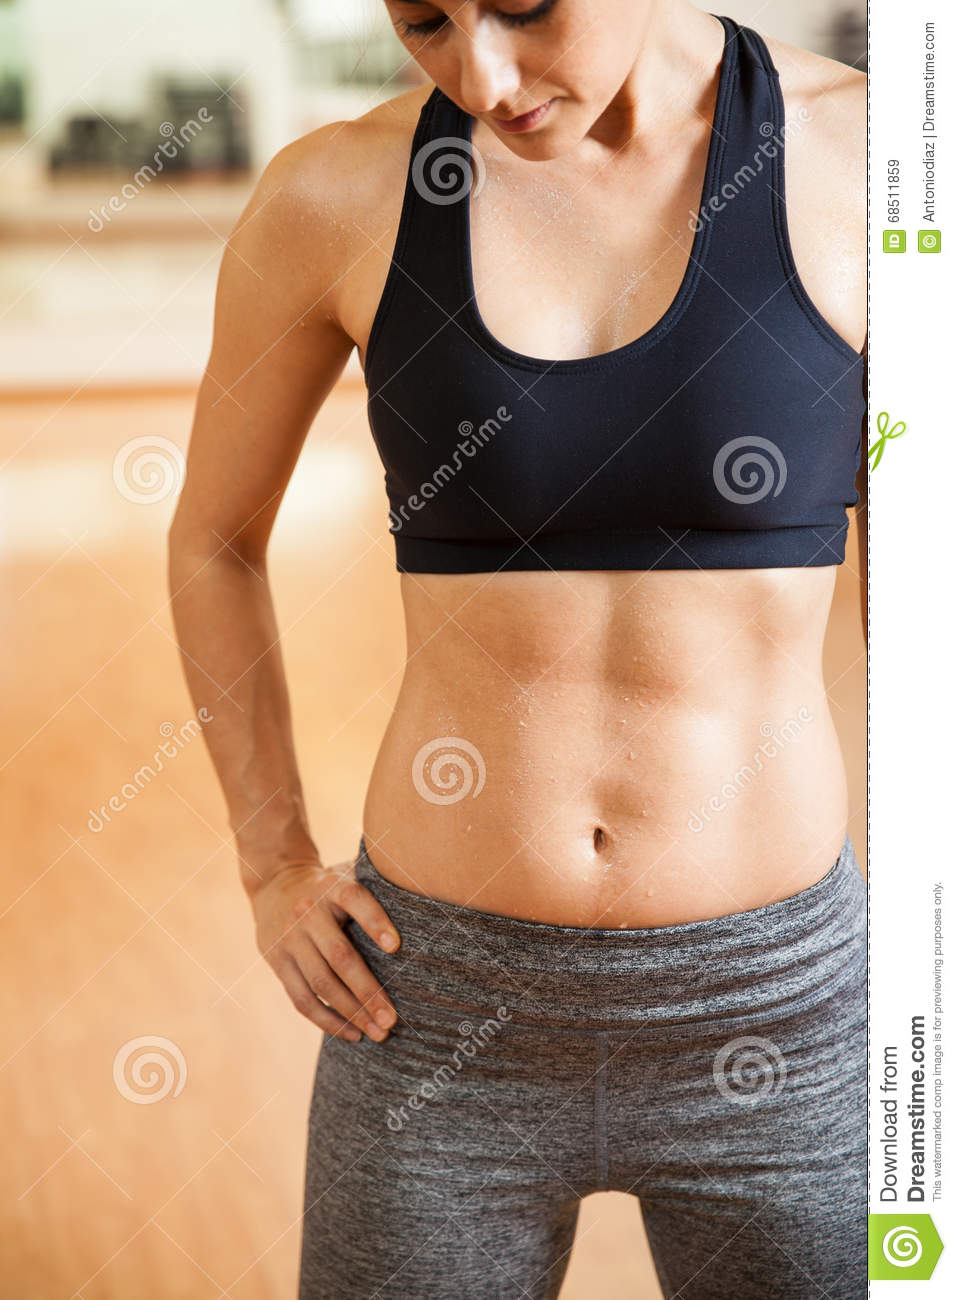 Teens with abs in sports bras curiously